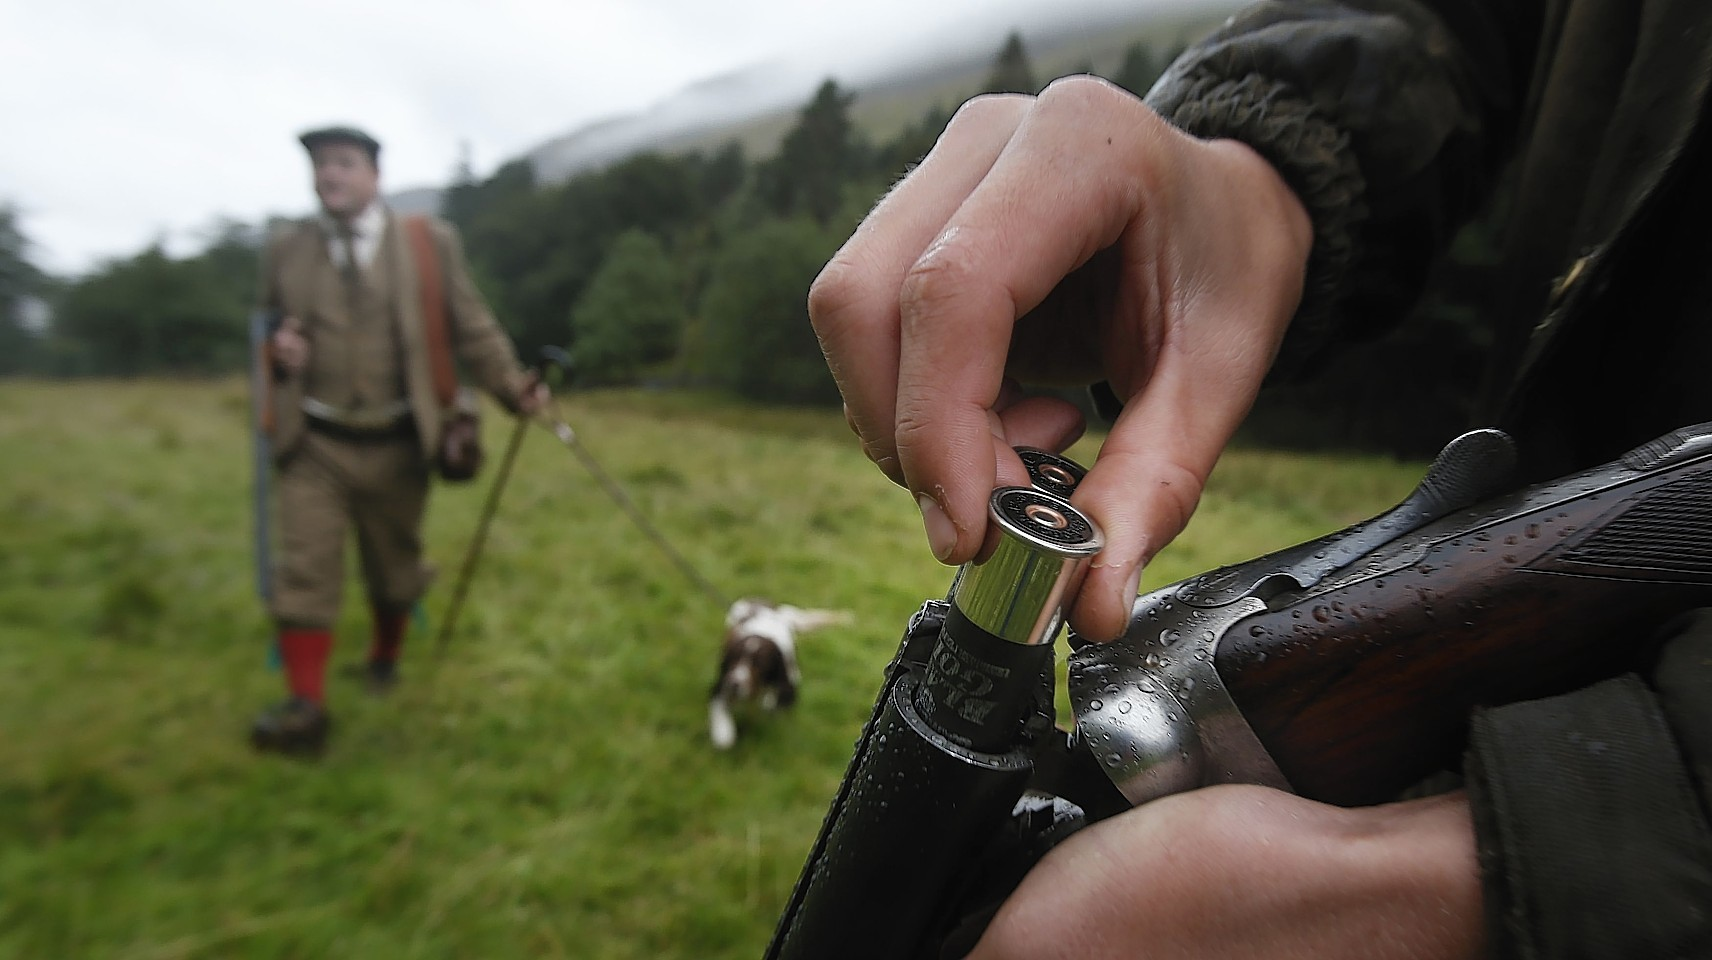 The Scottish Parliament is currently considering legislation which would reintroduce business rates for shooting and deer stalking properties and raise about £4million